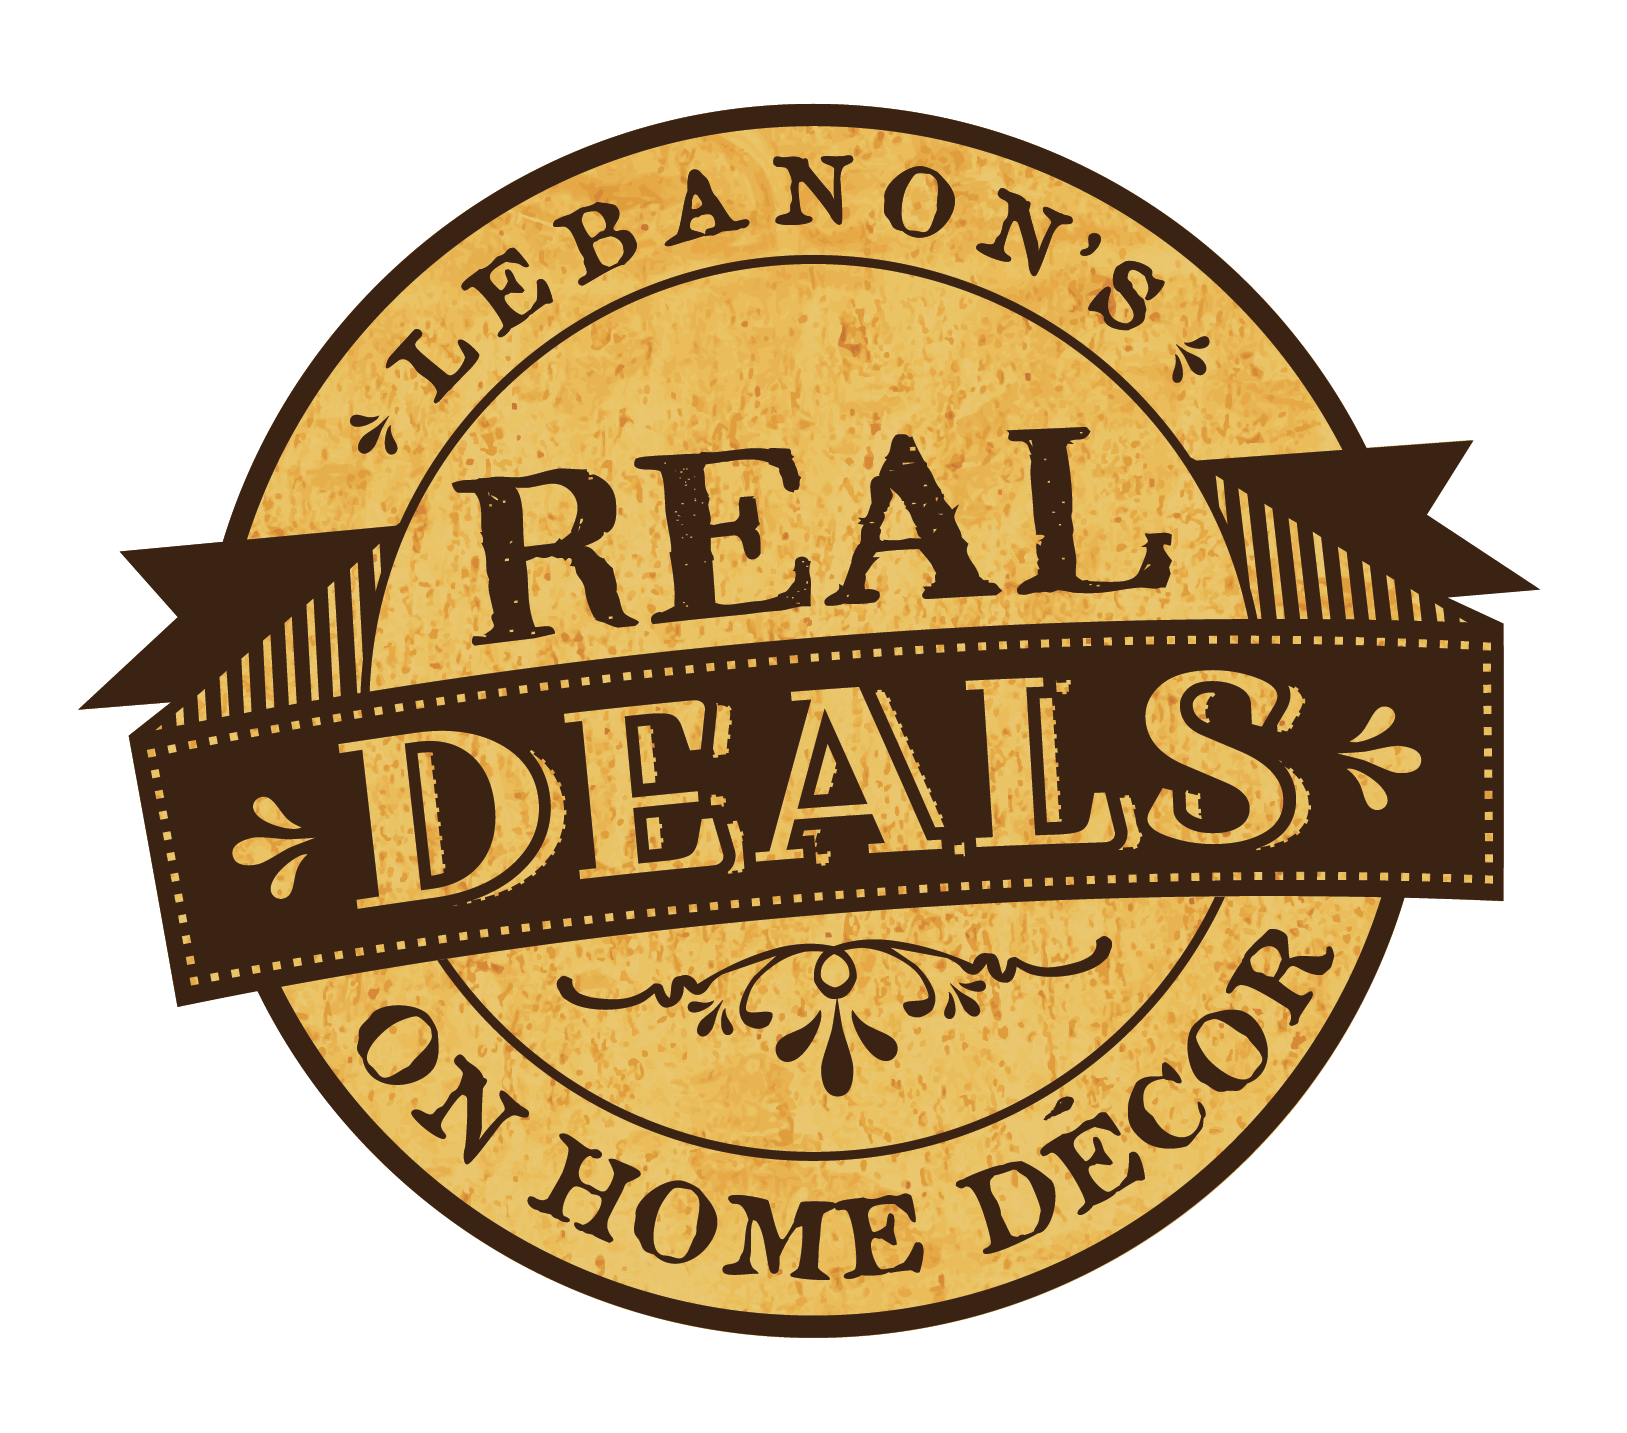 Real Deals On Home Decor, Lebanon, OR